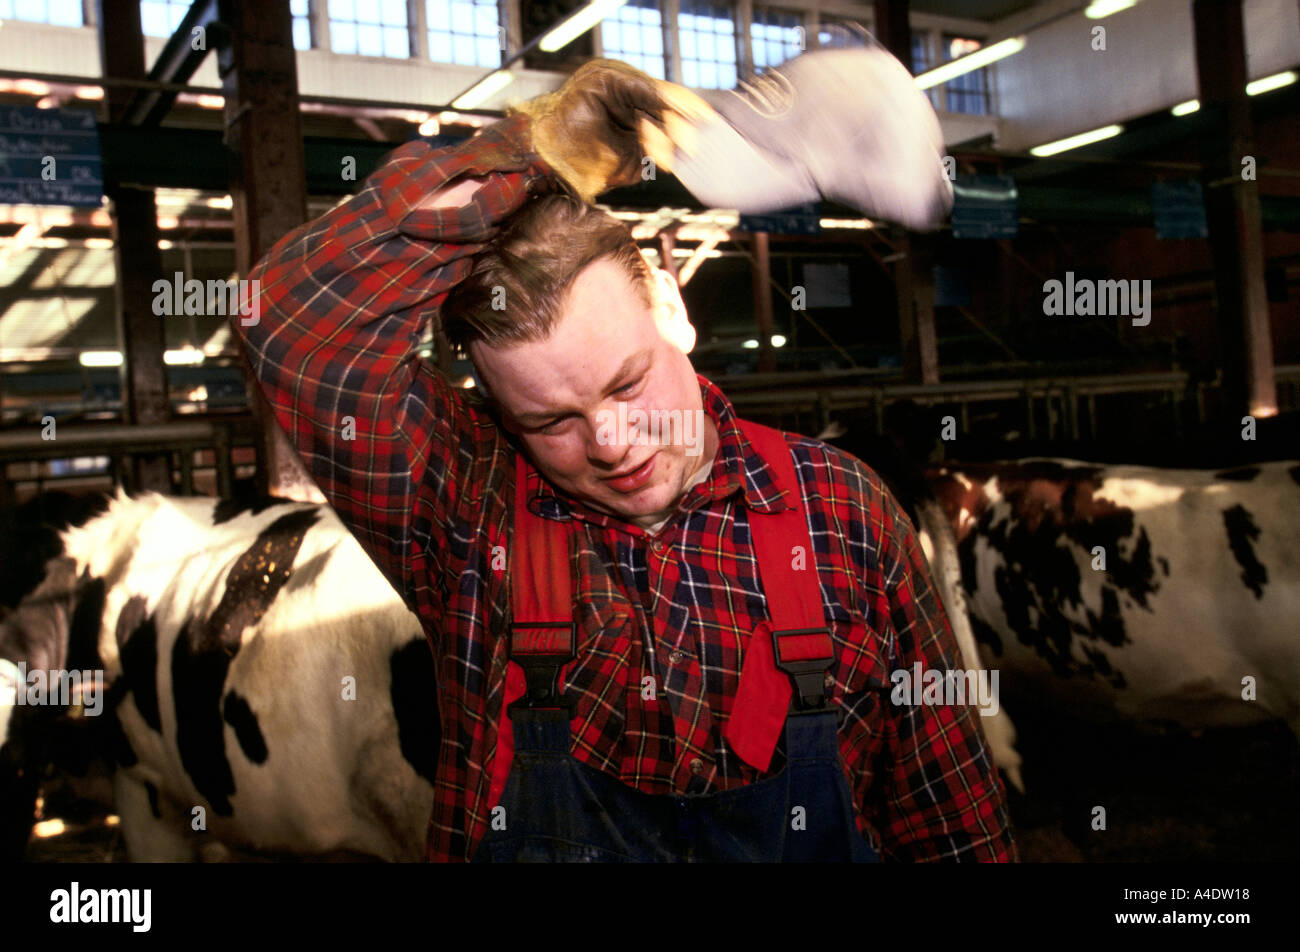 A swedish farm worker wipes away sweat during his shift at a farm near stockholm sweden - Stock Image